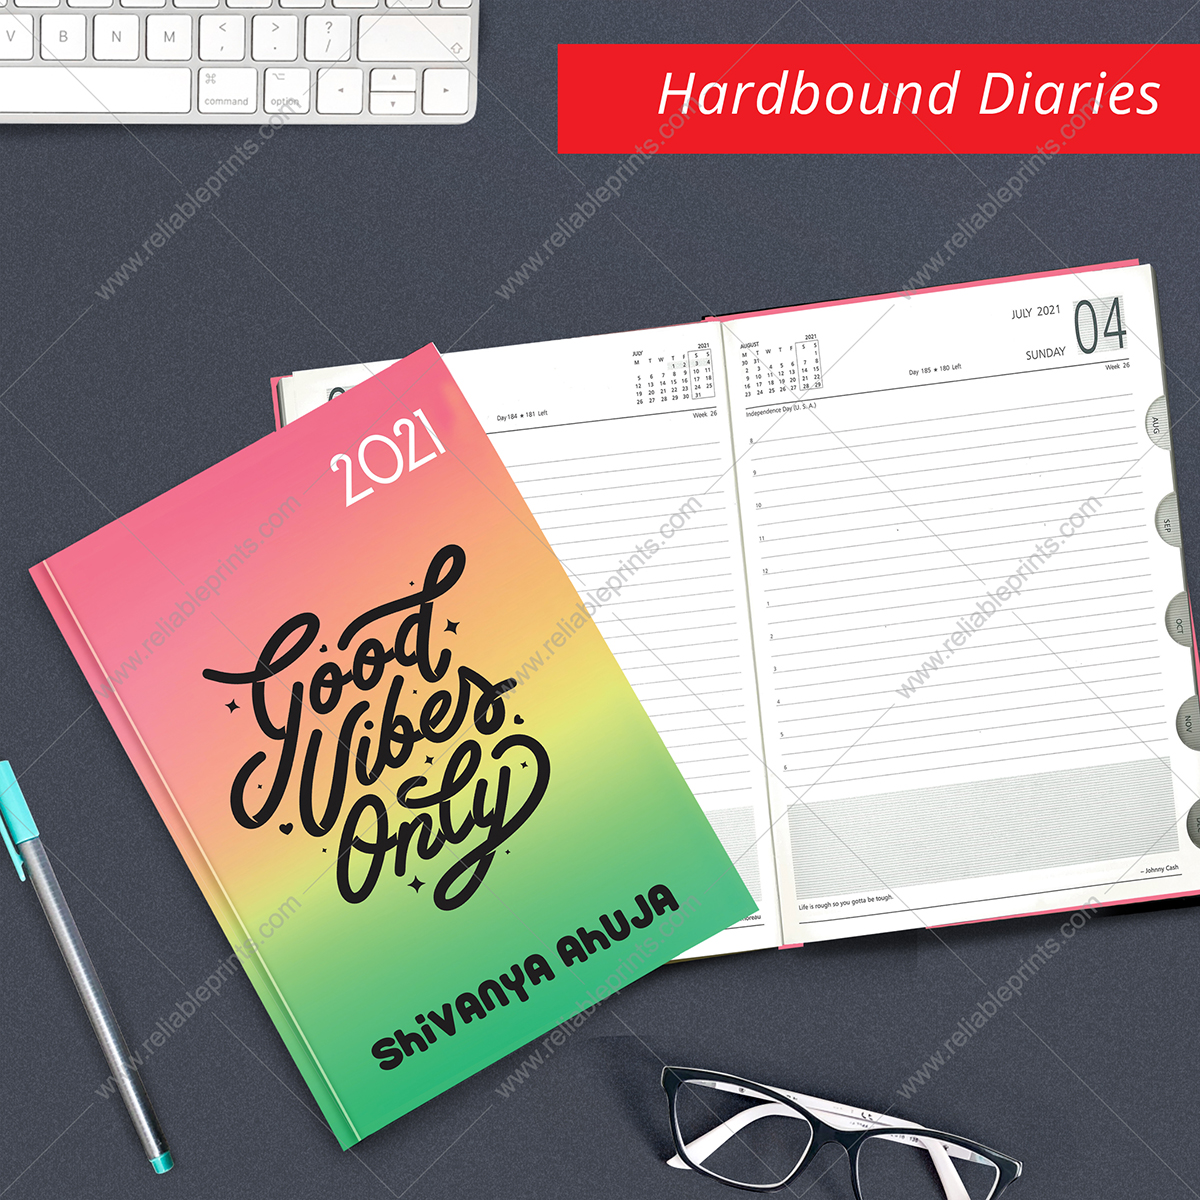 HardBound Diaries